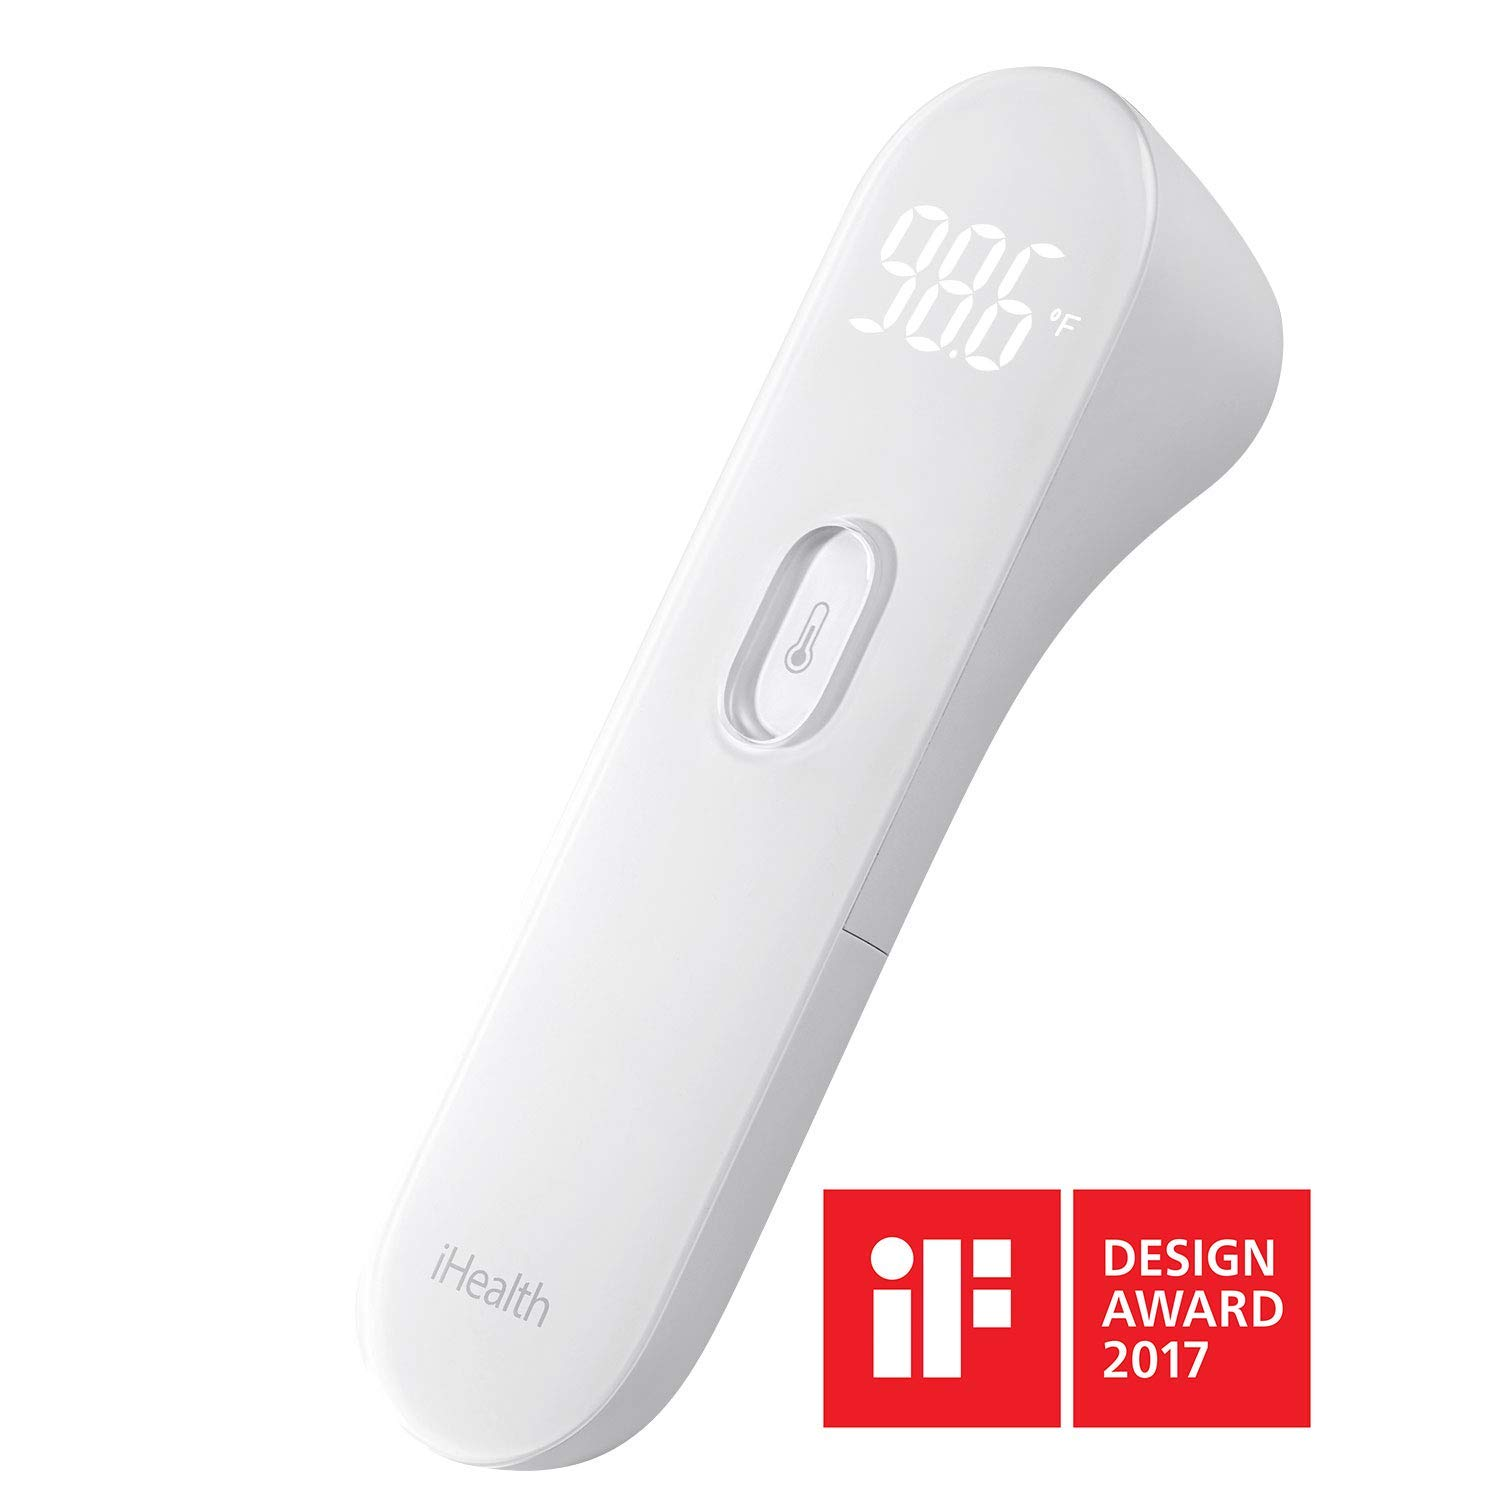 iHealth Forehead Thermometer, Infrared Baby Thermometer for Best Accuracy with 3 Ultra Sensitive Sensors,Medical Digital Fever Thermometer with New Algorithm,Instant Reading for Baby Kids and Adults by iHealth